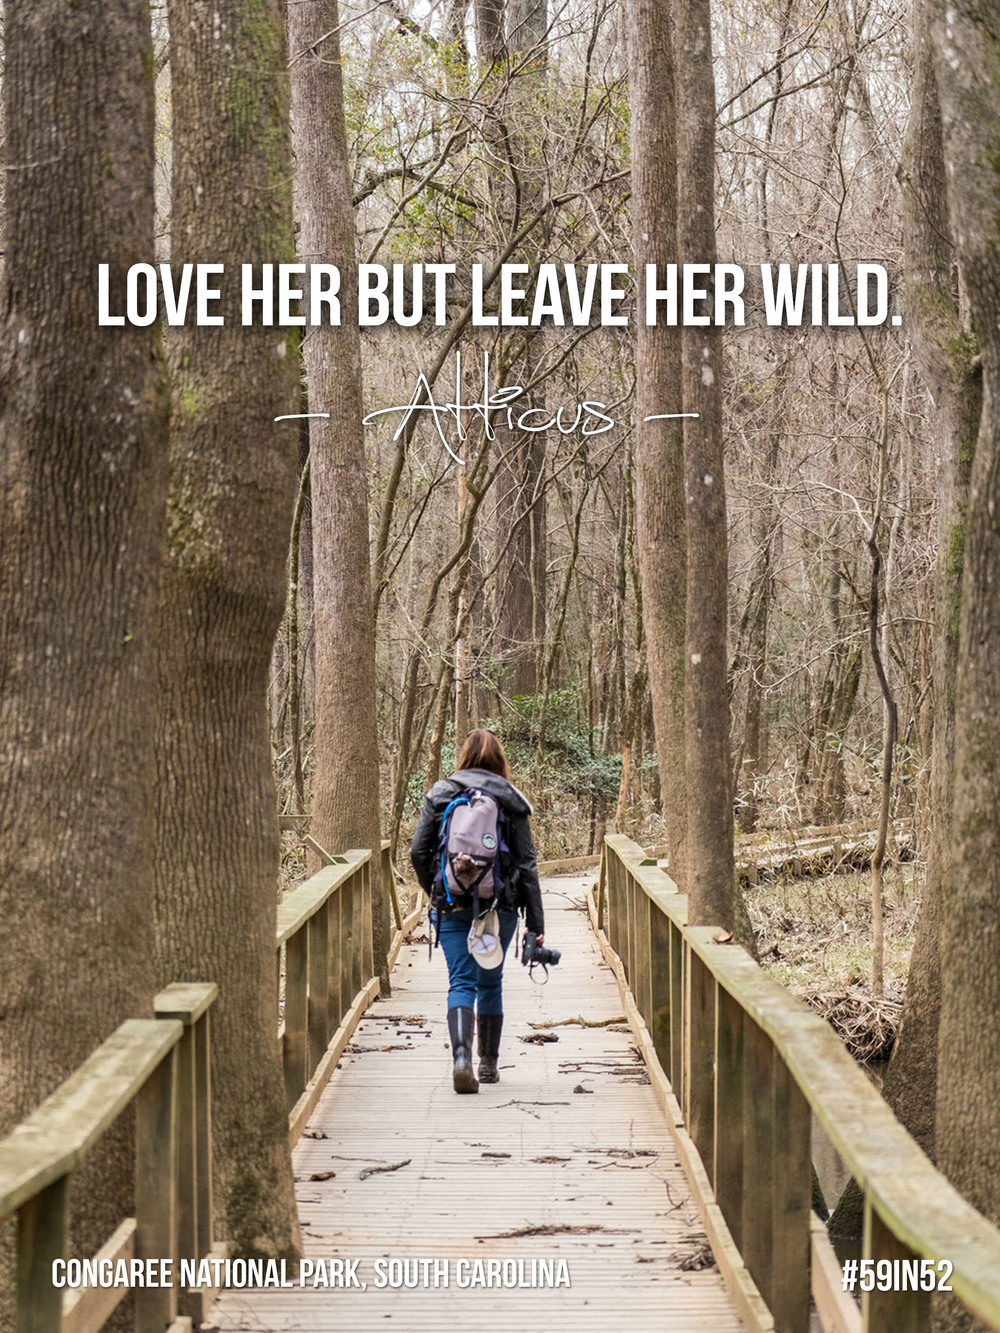 """Love her but leave her wild."" - Atticus"